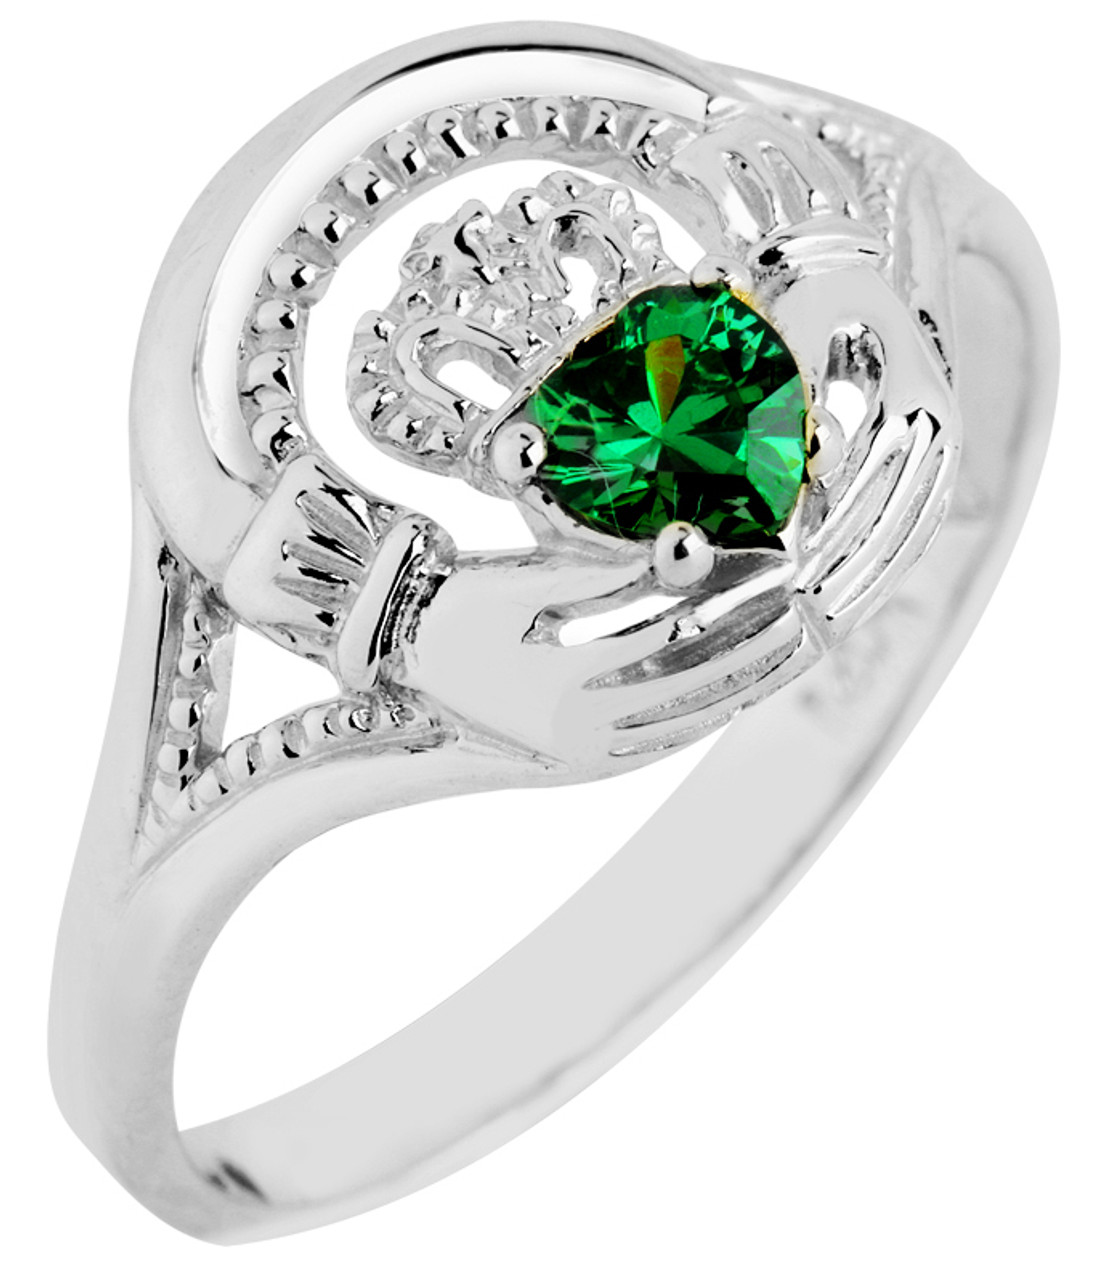 e945ff69b2007 White Gold Claddagh Ring with CZ Emerald Green Stone